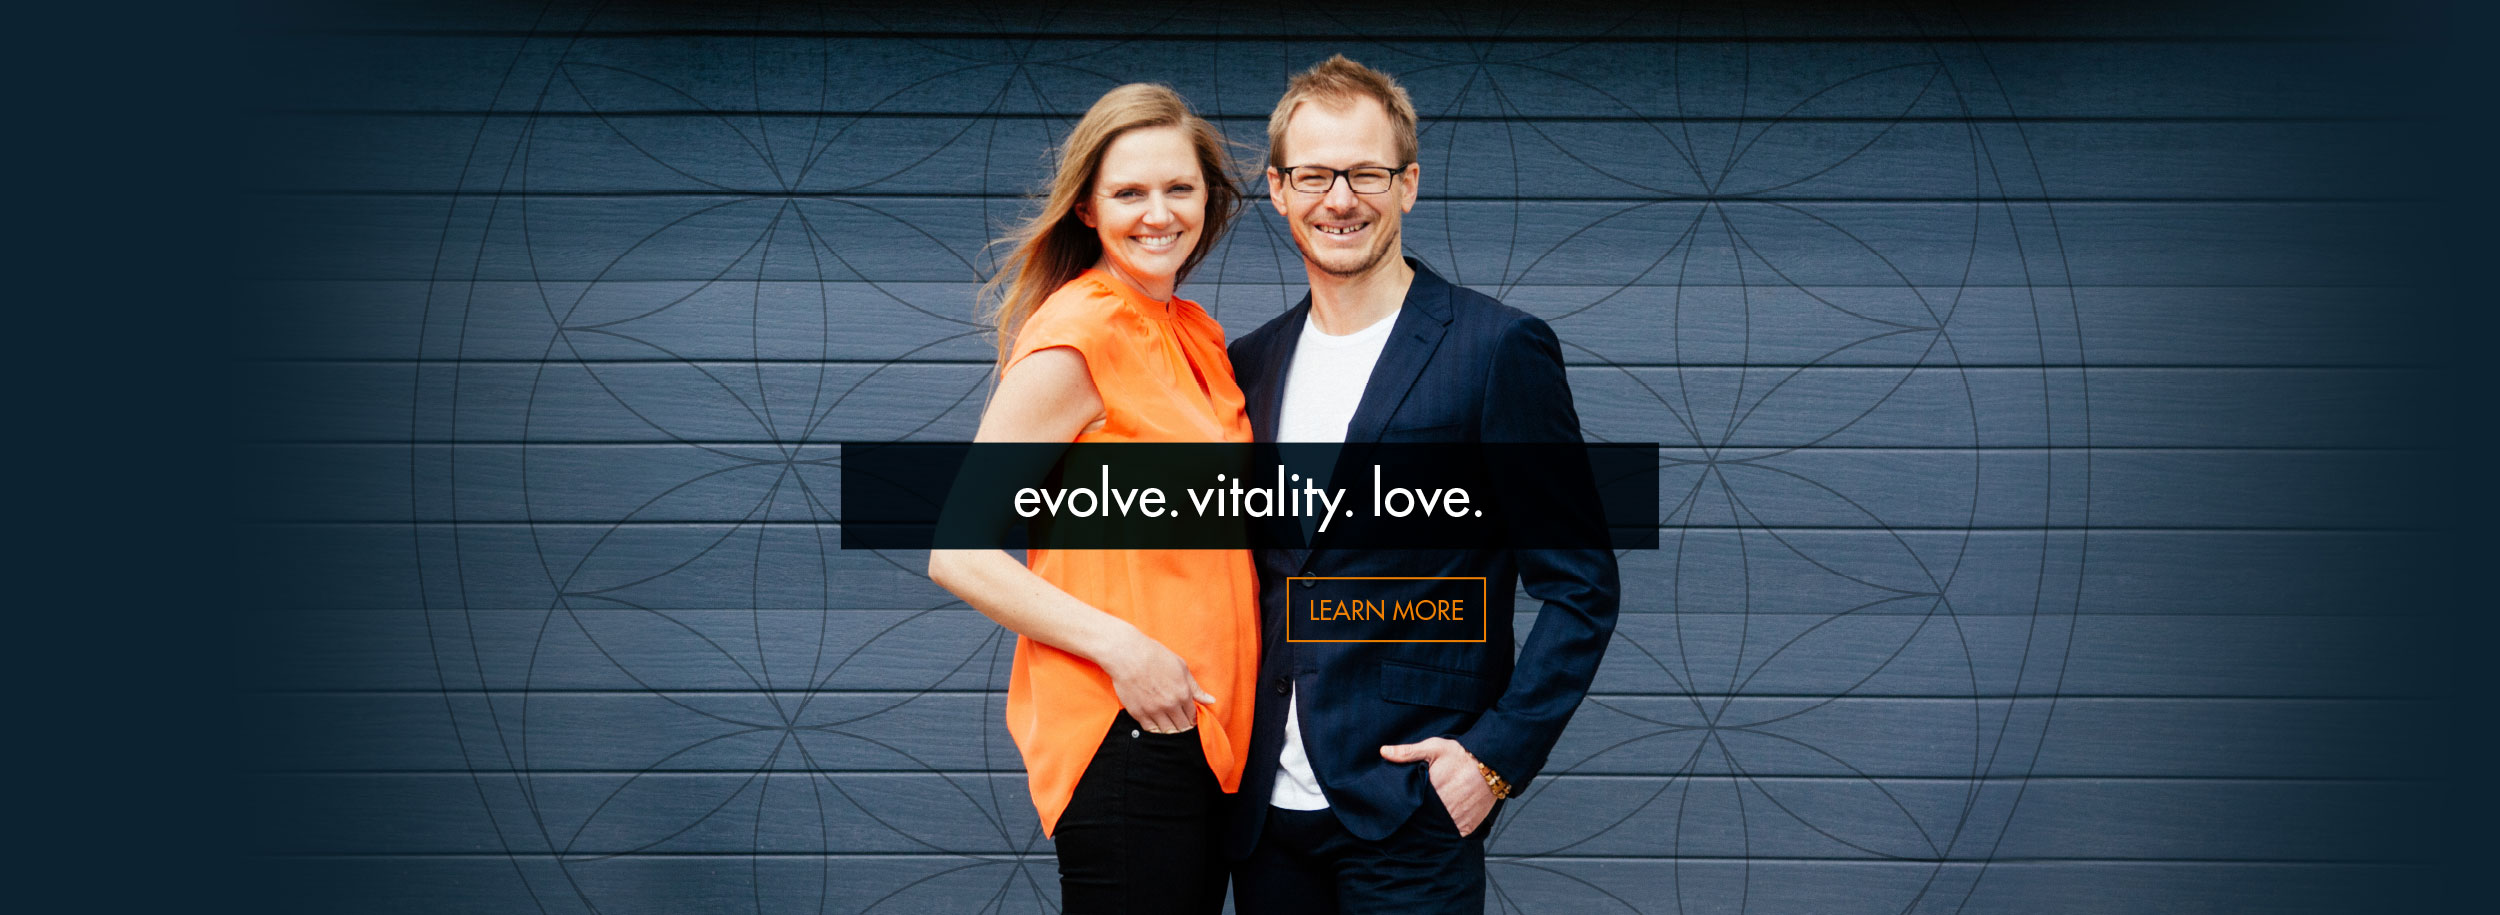 evolve. vitality. love. Learn More